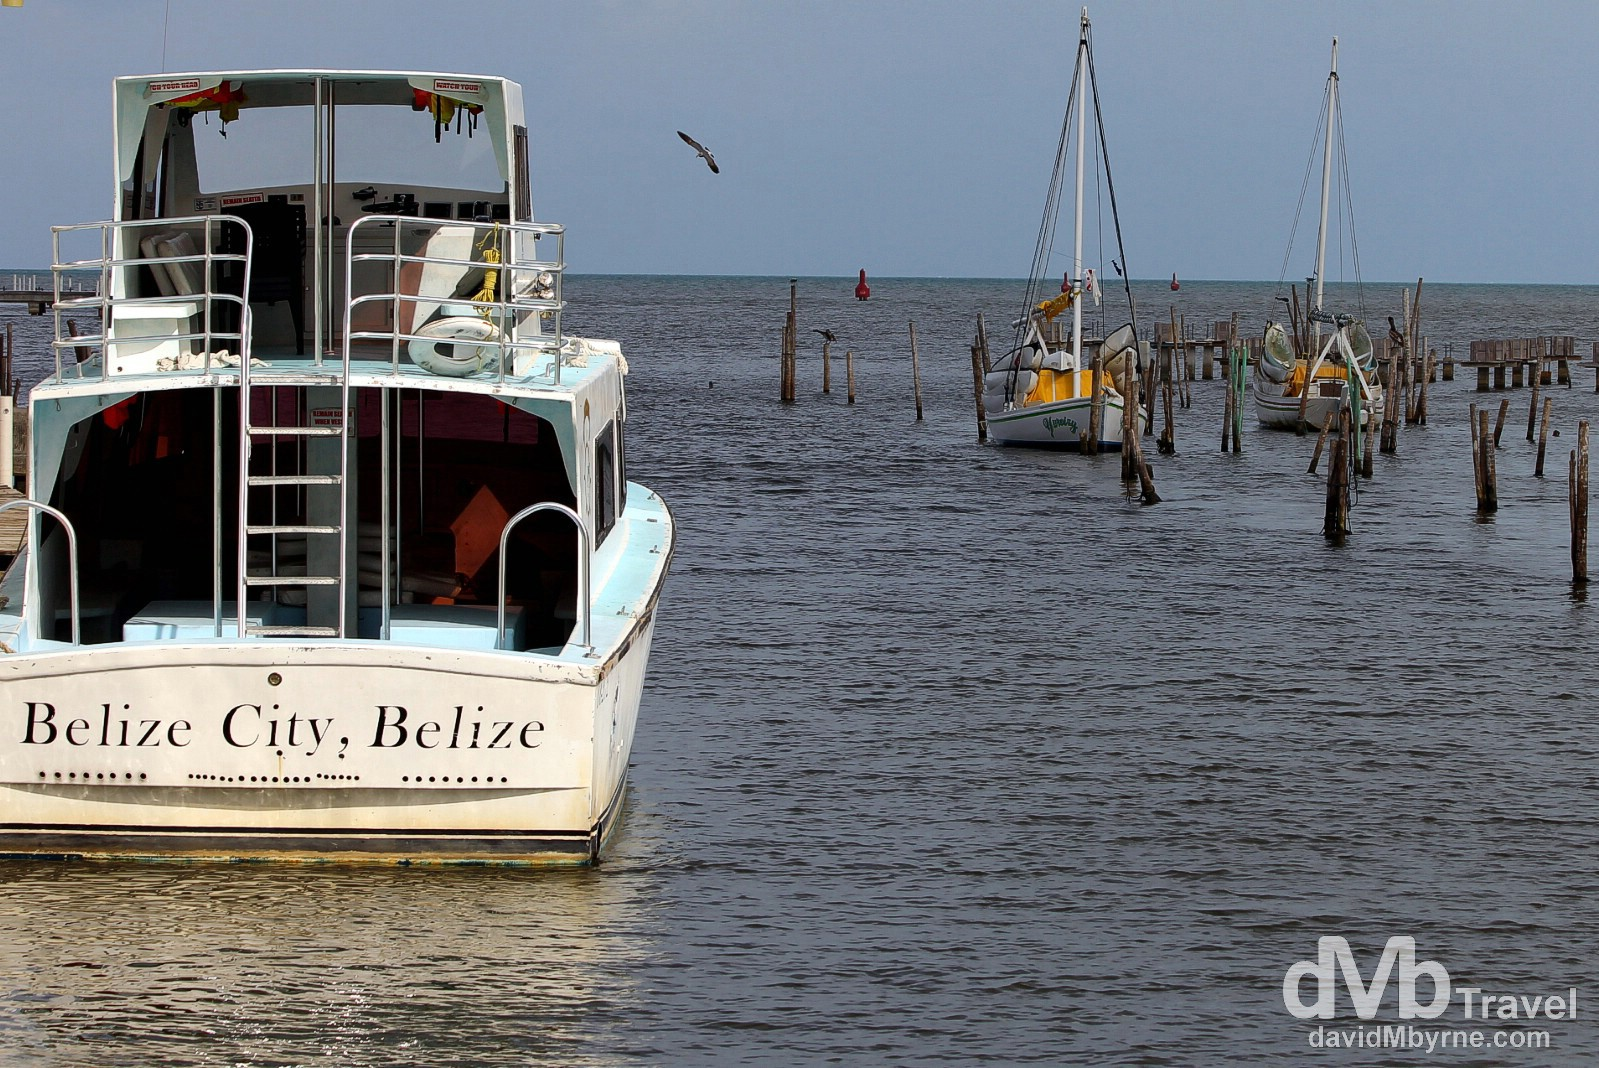 Belize City, Belize, Central America